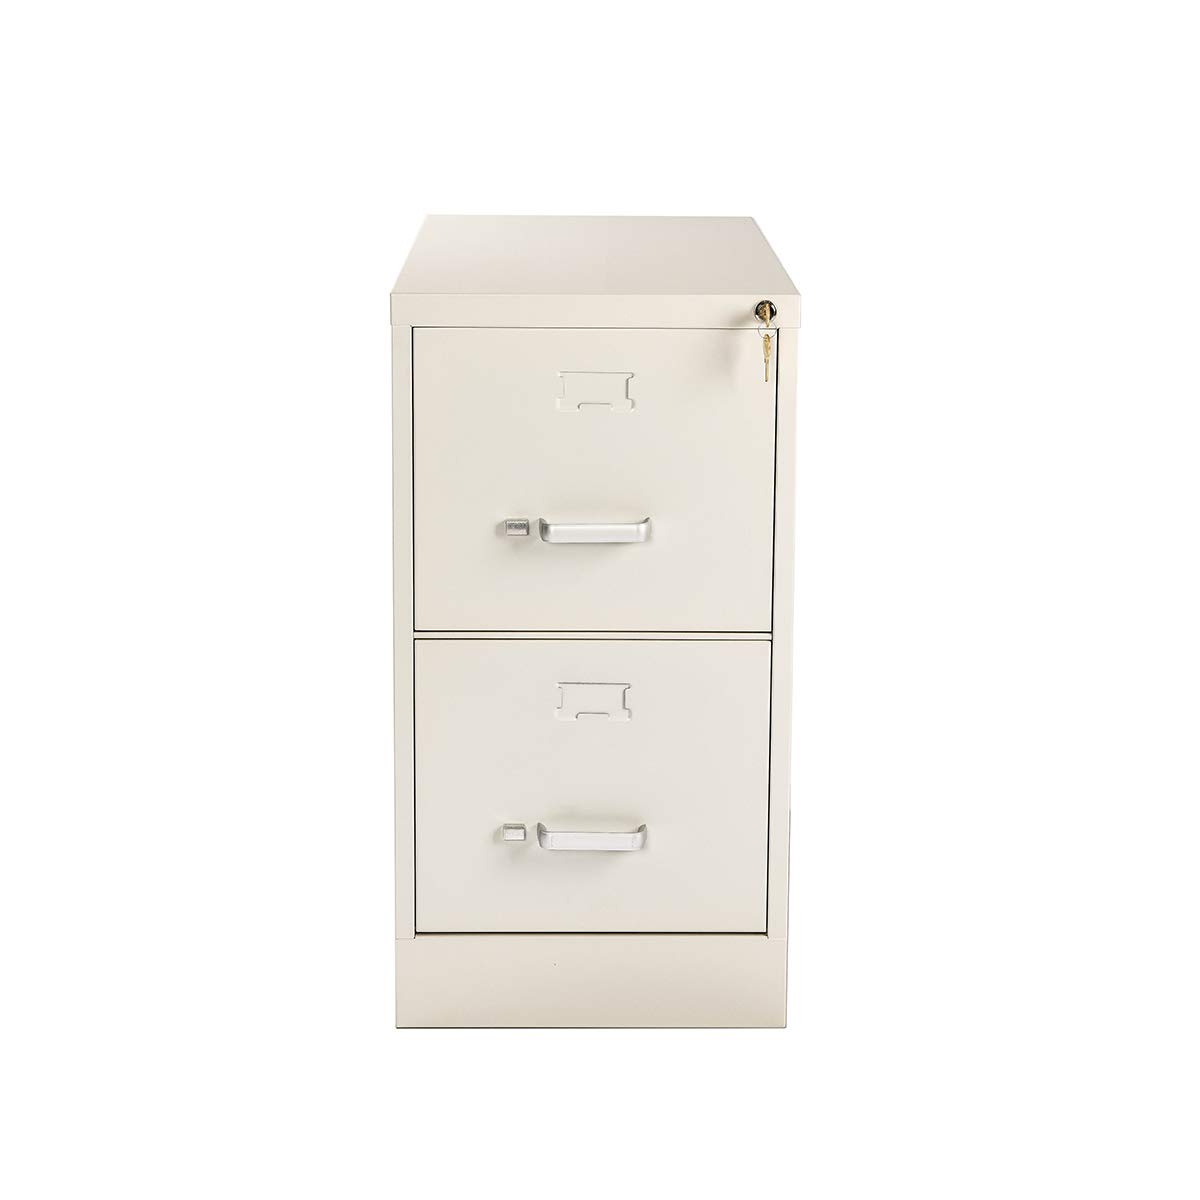 2-Drawers File Cabinet with Lock Metal Rails Hanging Letter-Size Commercial 26.5''Deep for Office Storage Home(Putty White) by YURUCY (Image #6)